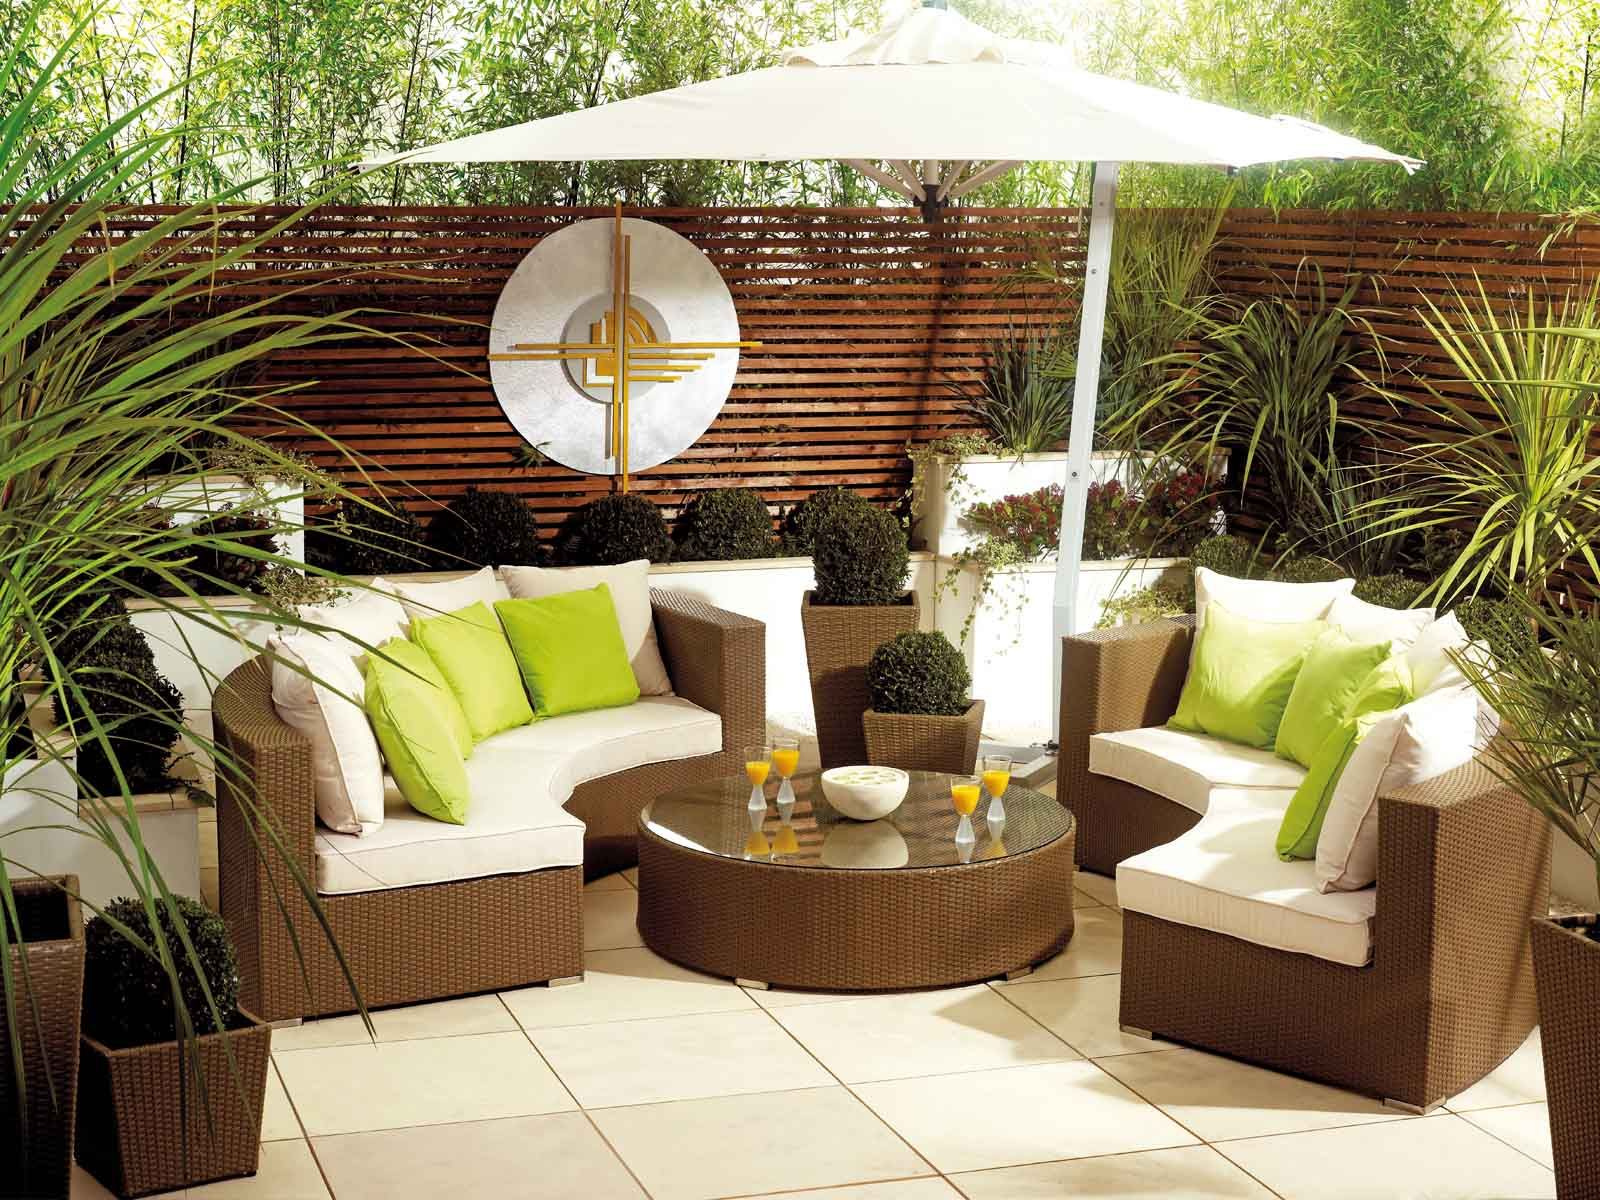 20 beautiful outdoor living room designs that will delight you